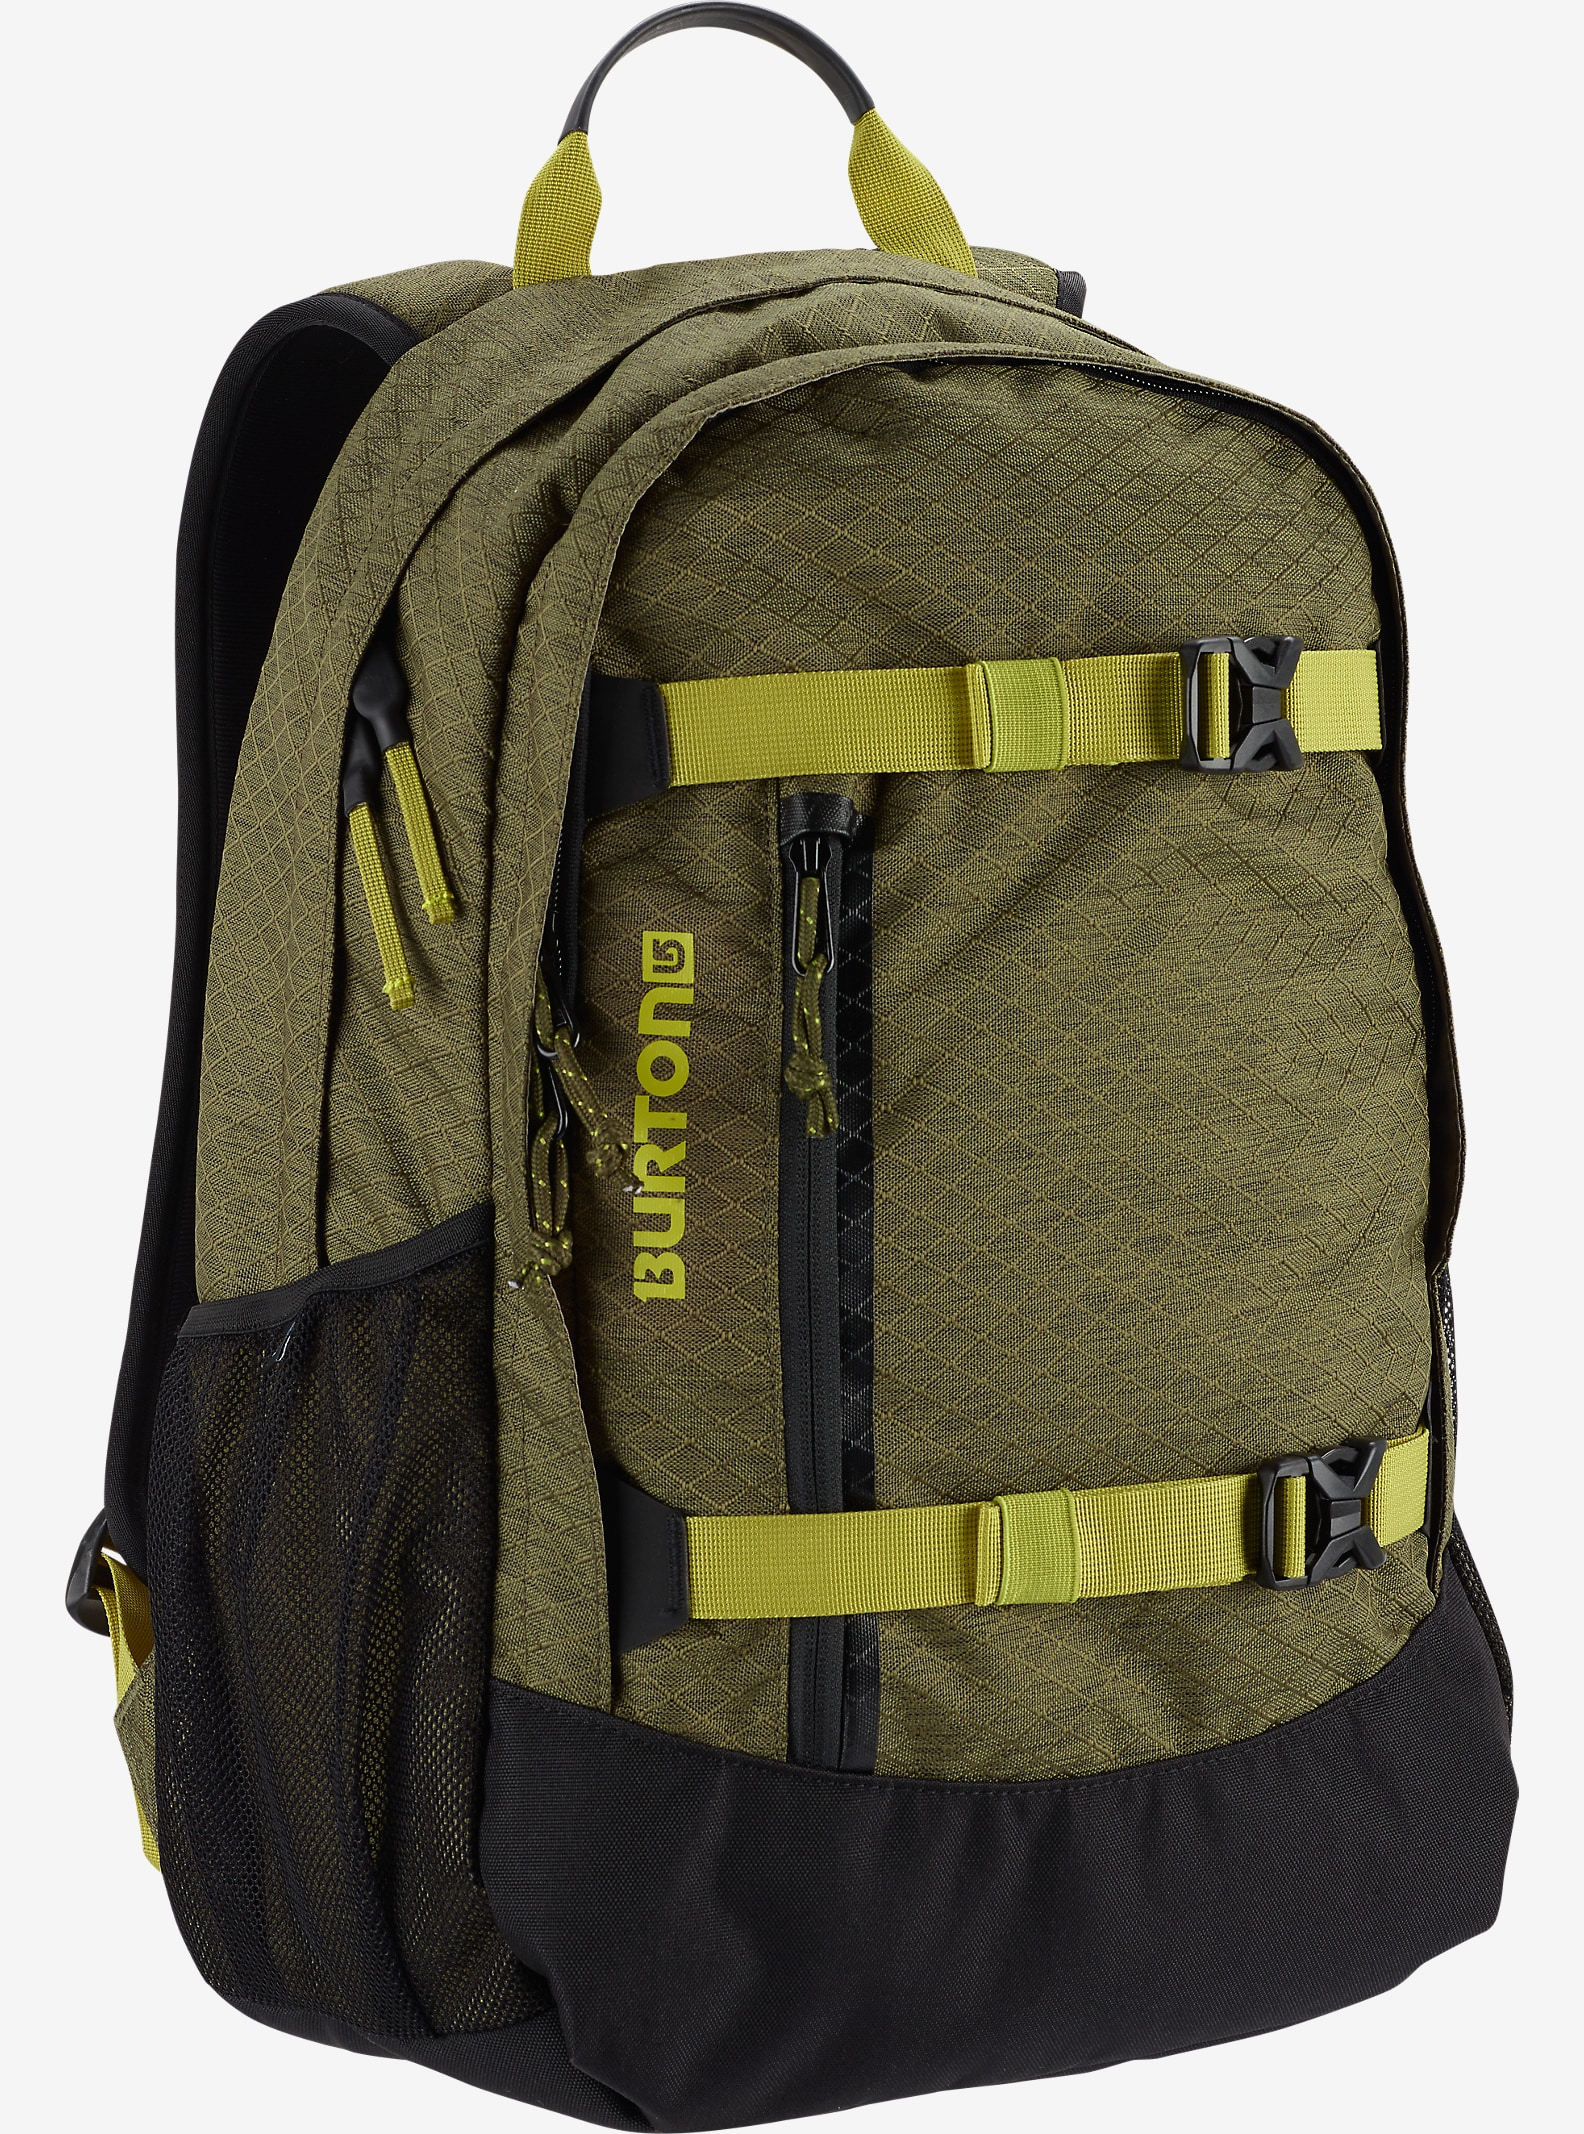 Burton Day Hiker 25L Backpack shown in Jungle Heather Diamond Ripstop